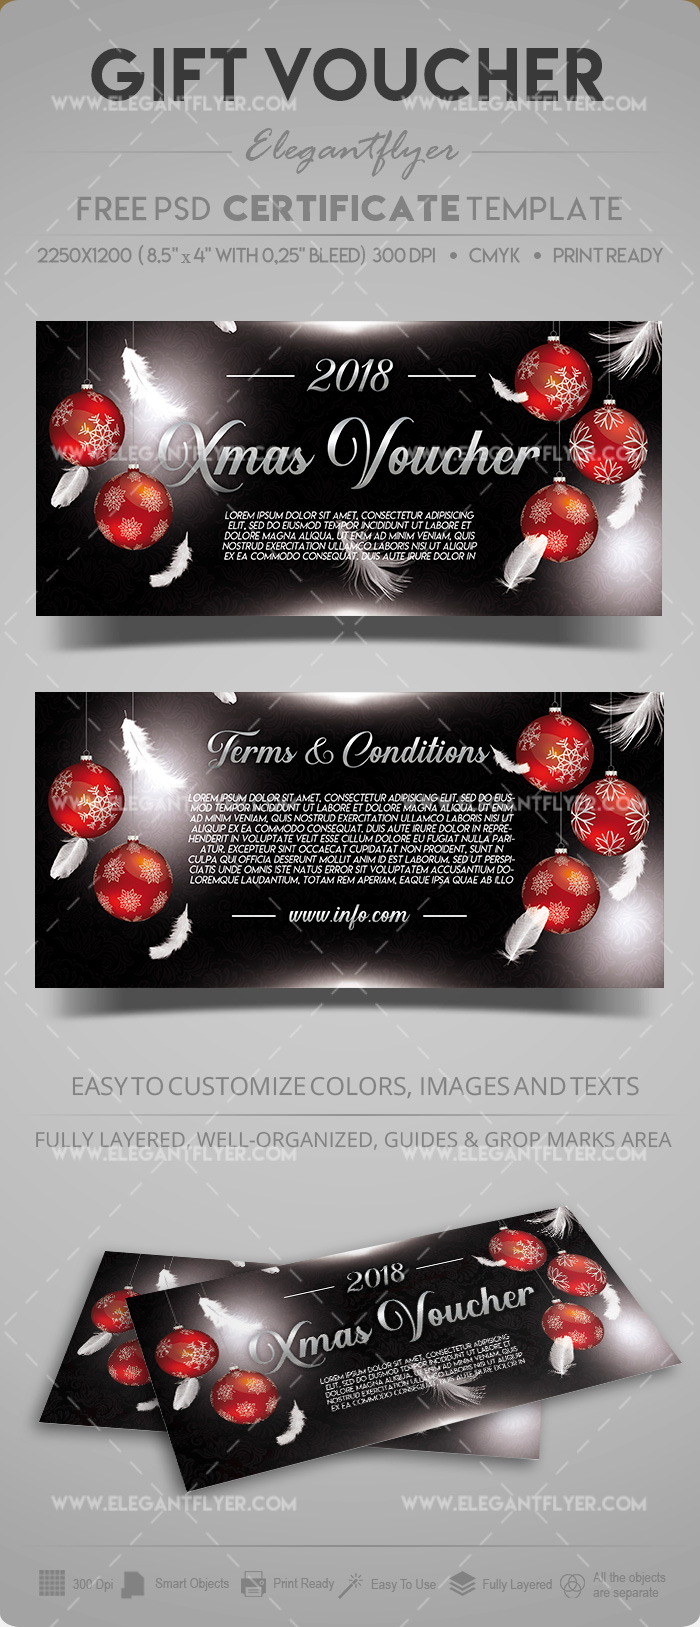 Free Xmas Gift Voucher in PSD